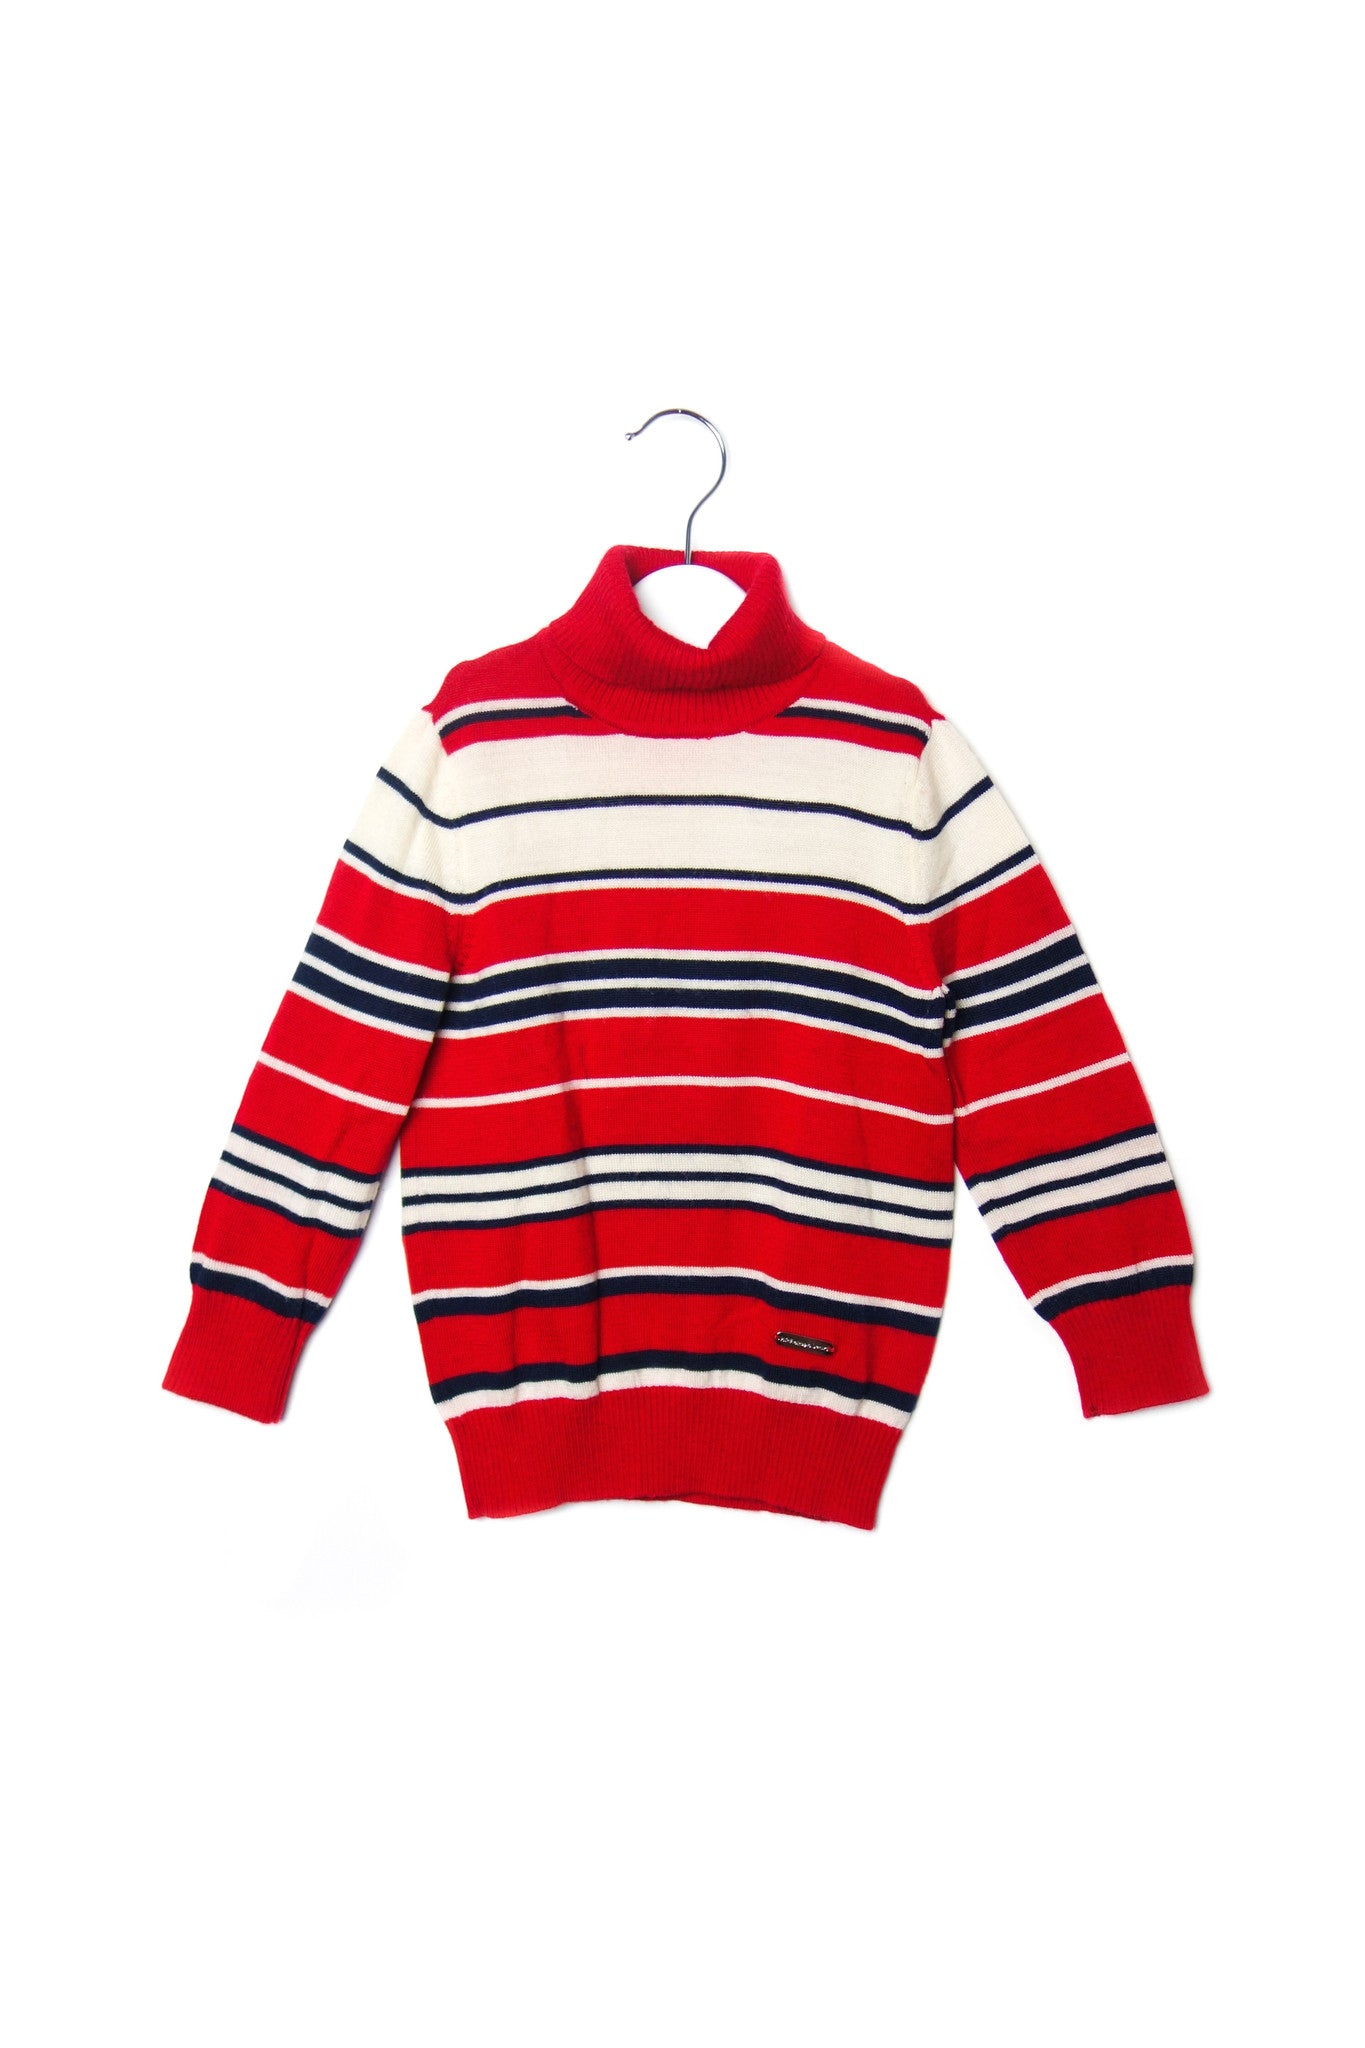 10001824 Nicholas & Bears Kids~Sweater 3T at Retykle